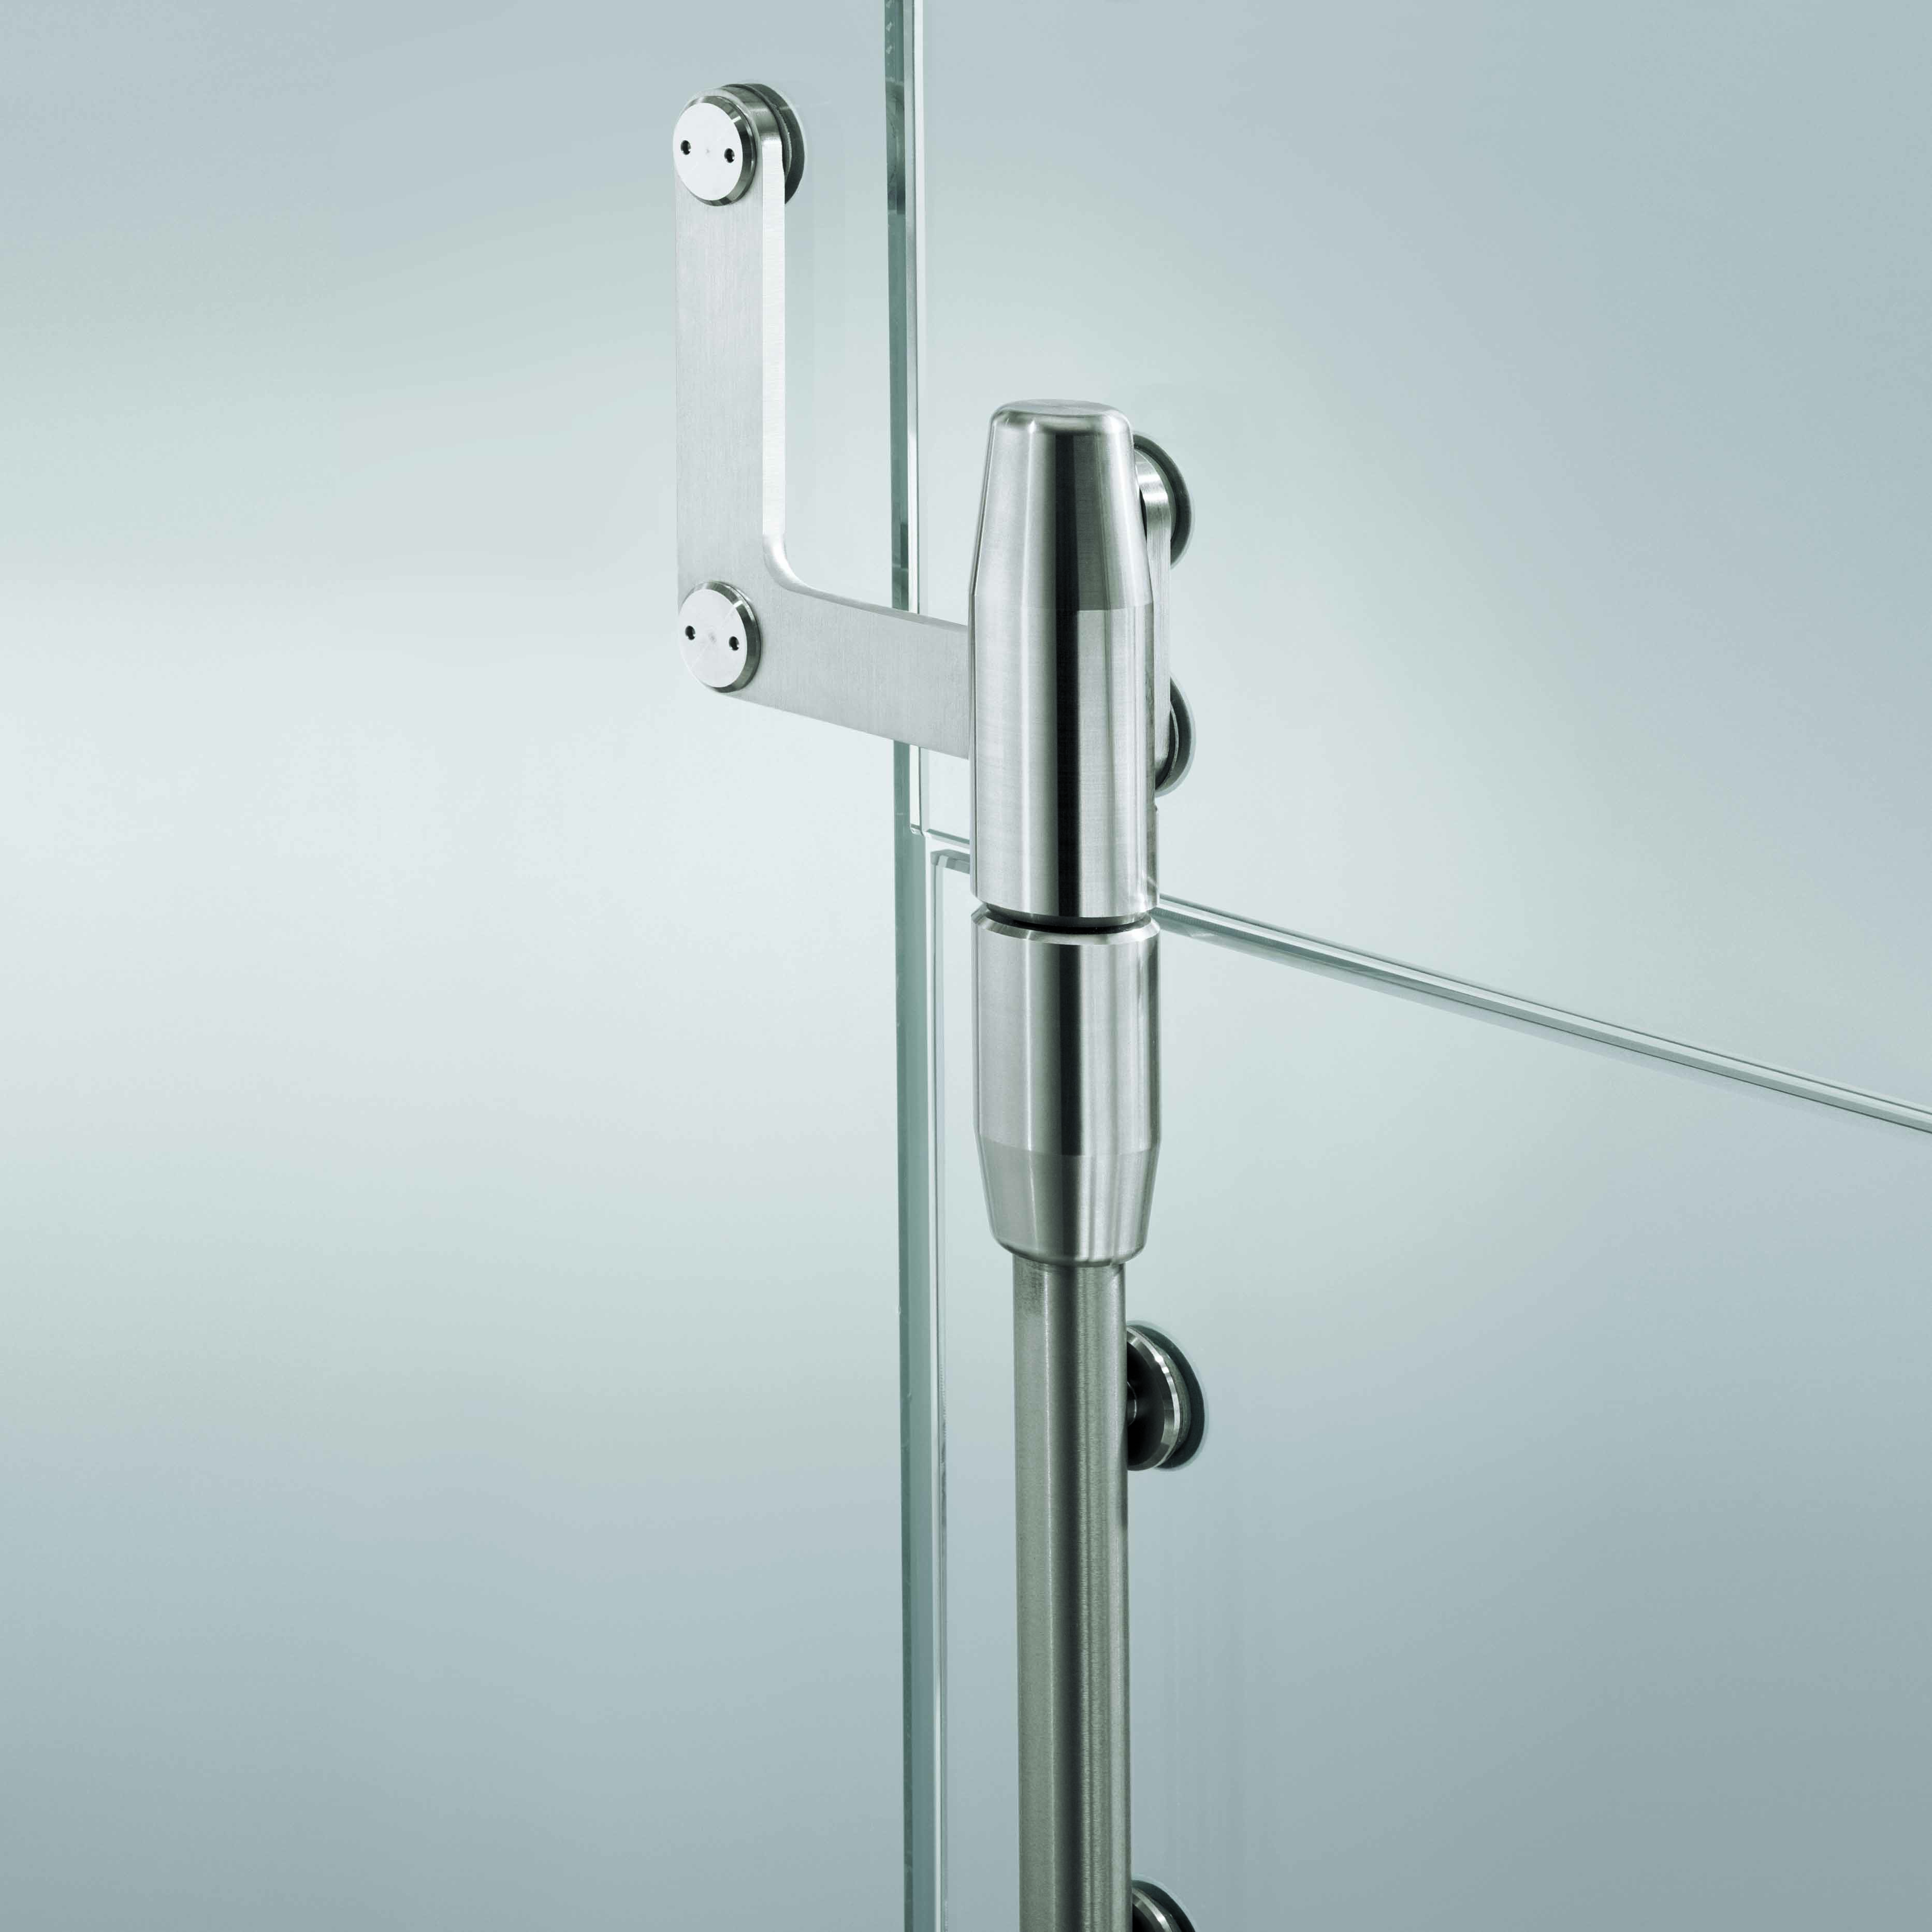 Dorma Manet Compact Concept Stainless Steel Fitting